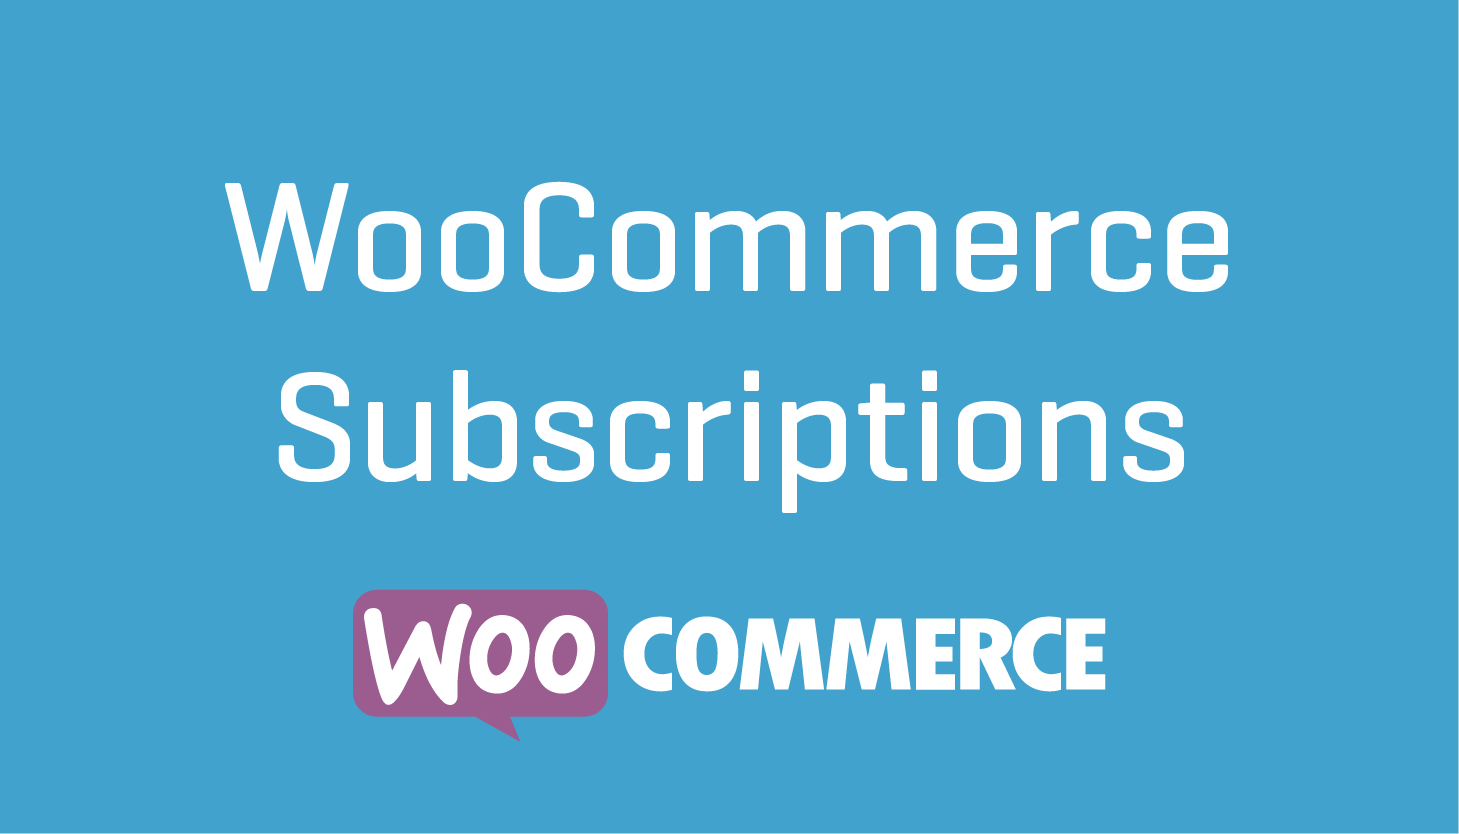 What are WooCommerce Subscriptions and how to use them